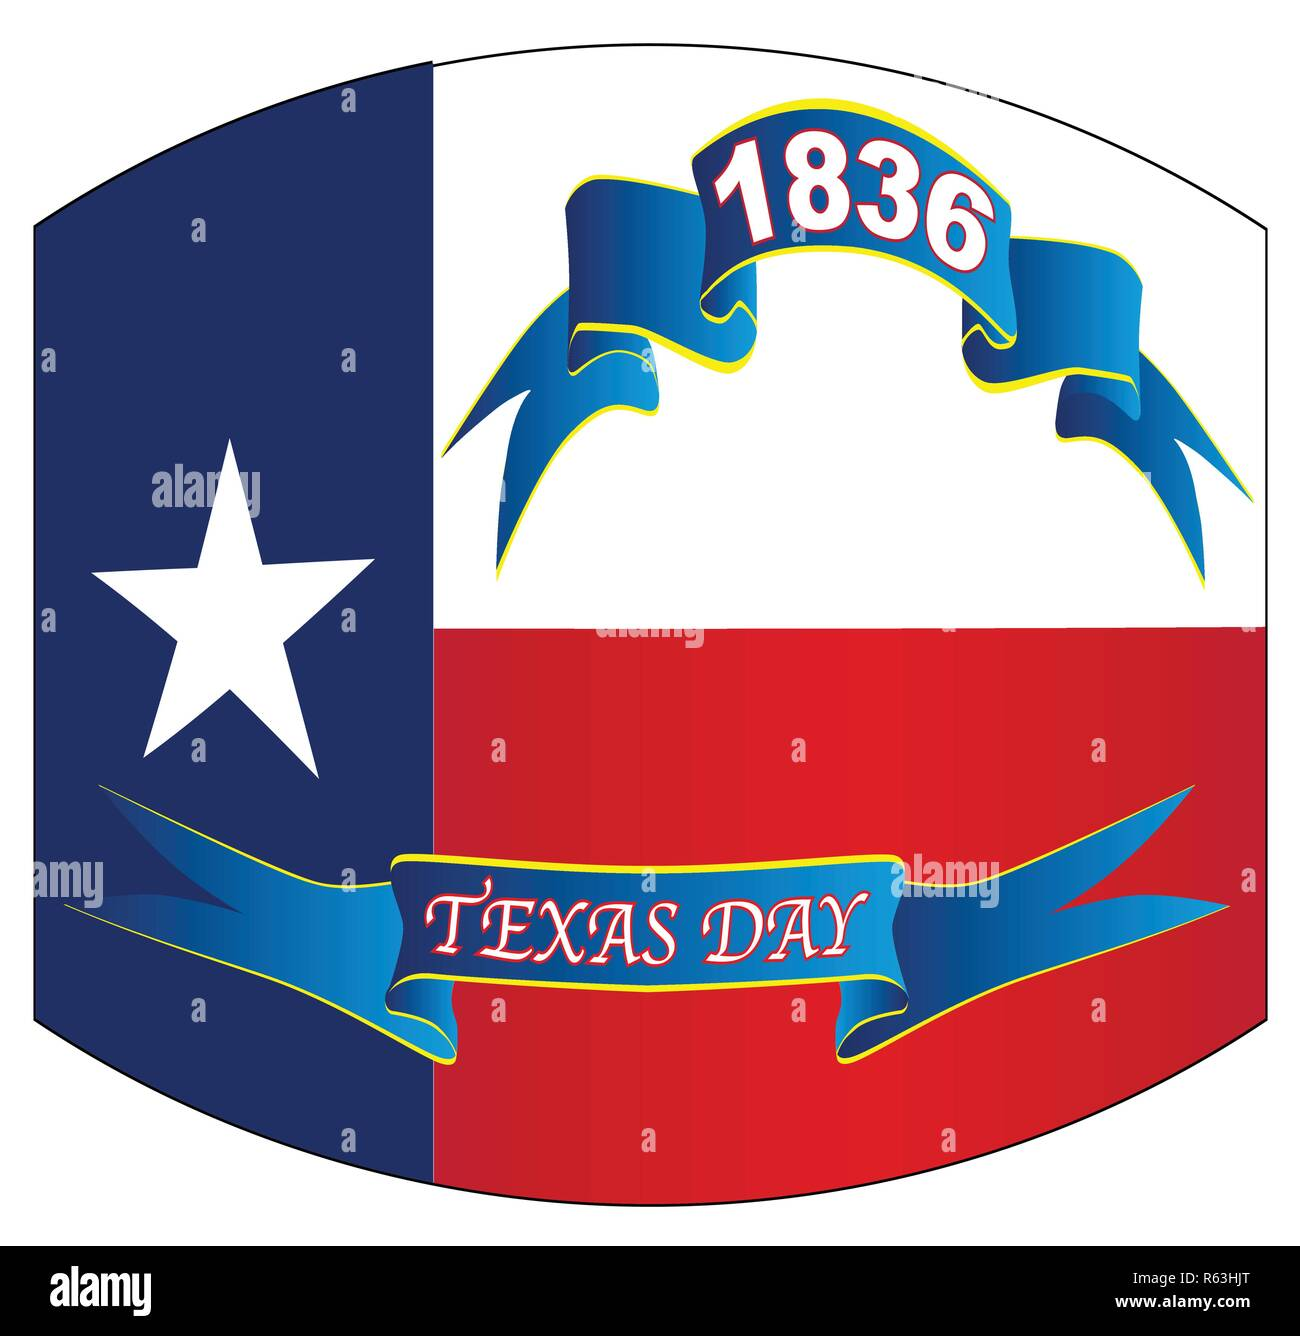 The flag of the USA state of TEXAS with ribbons and txt for Texas Day 1936 with warped out look - Stock Image